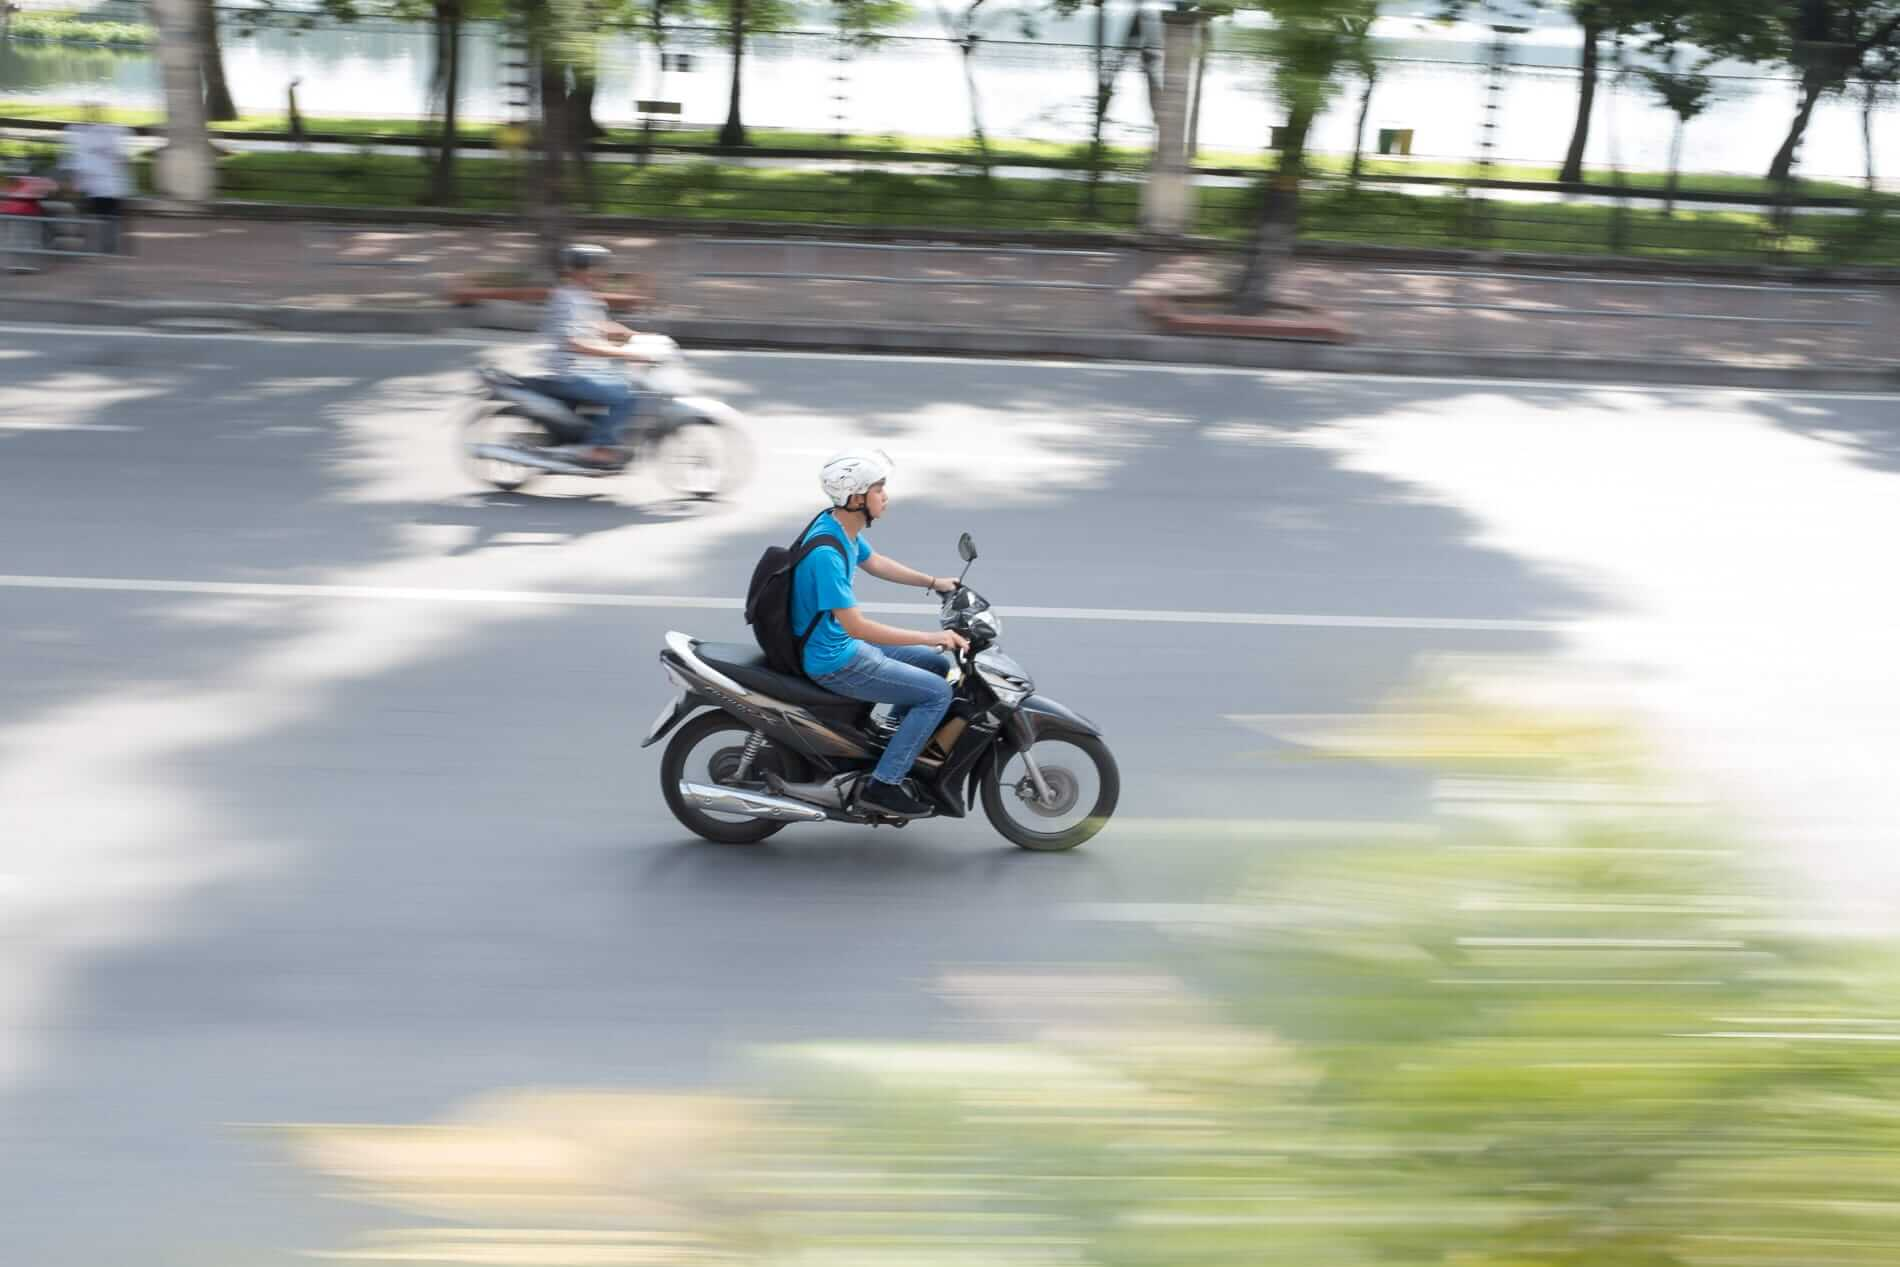 travelling on a motorbike in Hanoi